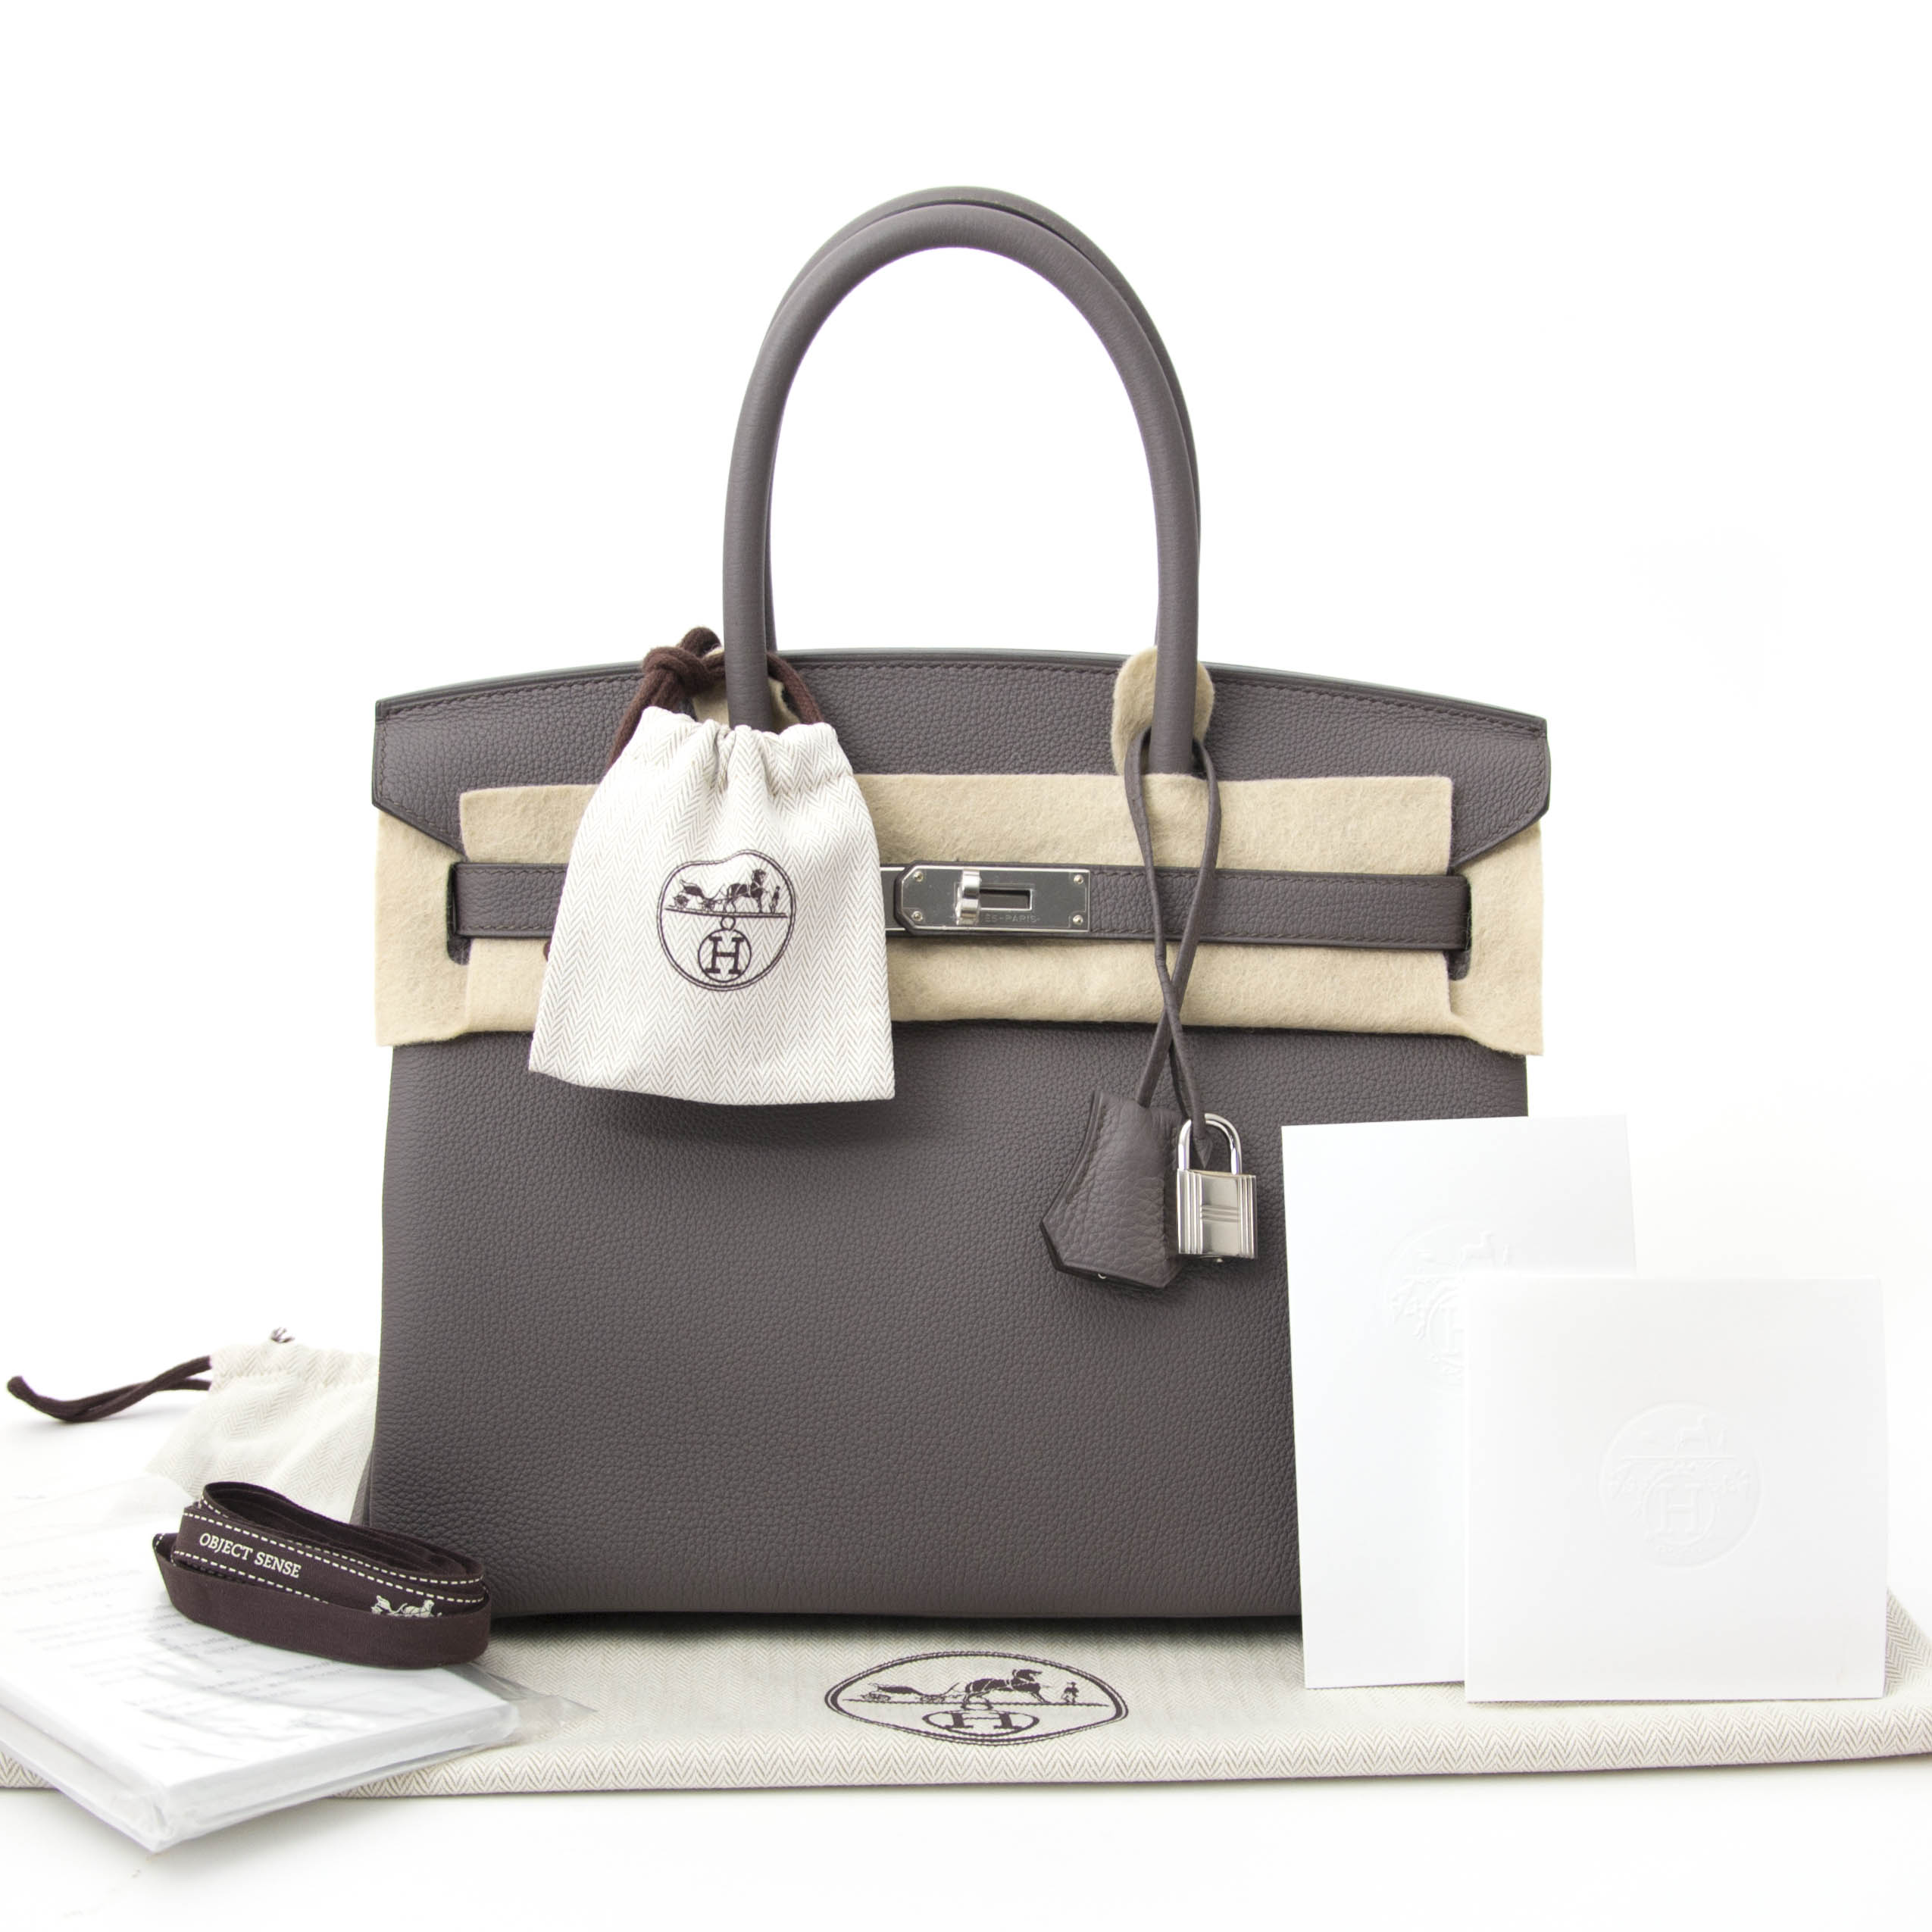 Are you looking for an authentic Hermes Birkin 30 Etain Togo PHW?